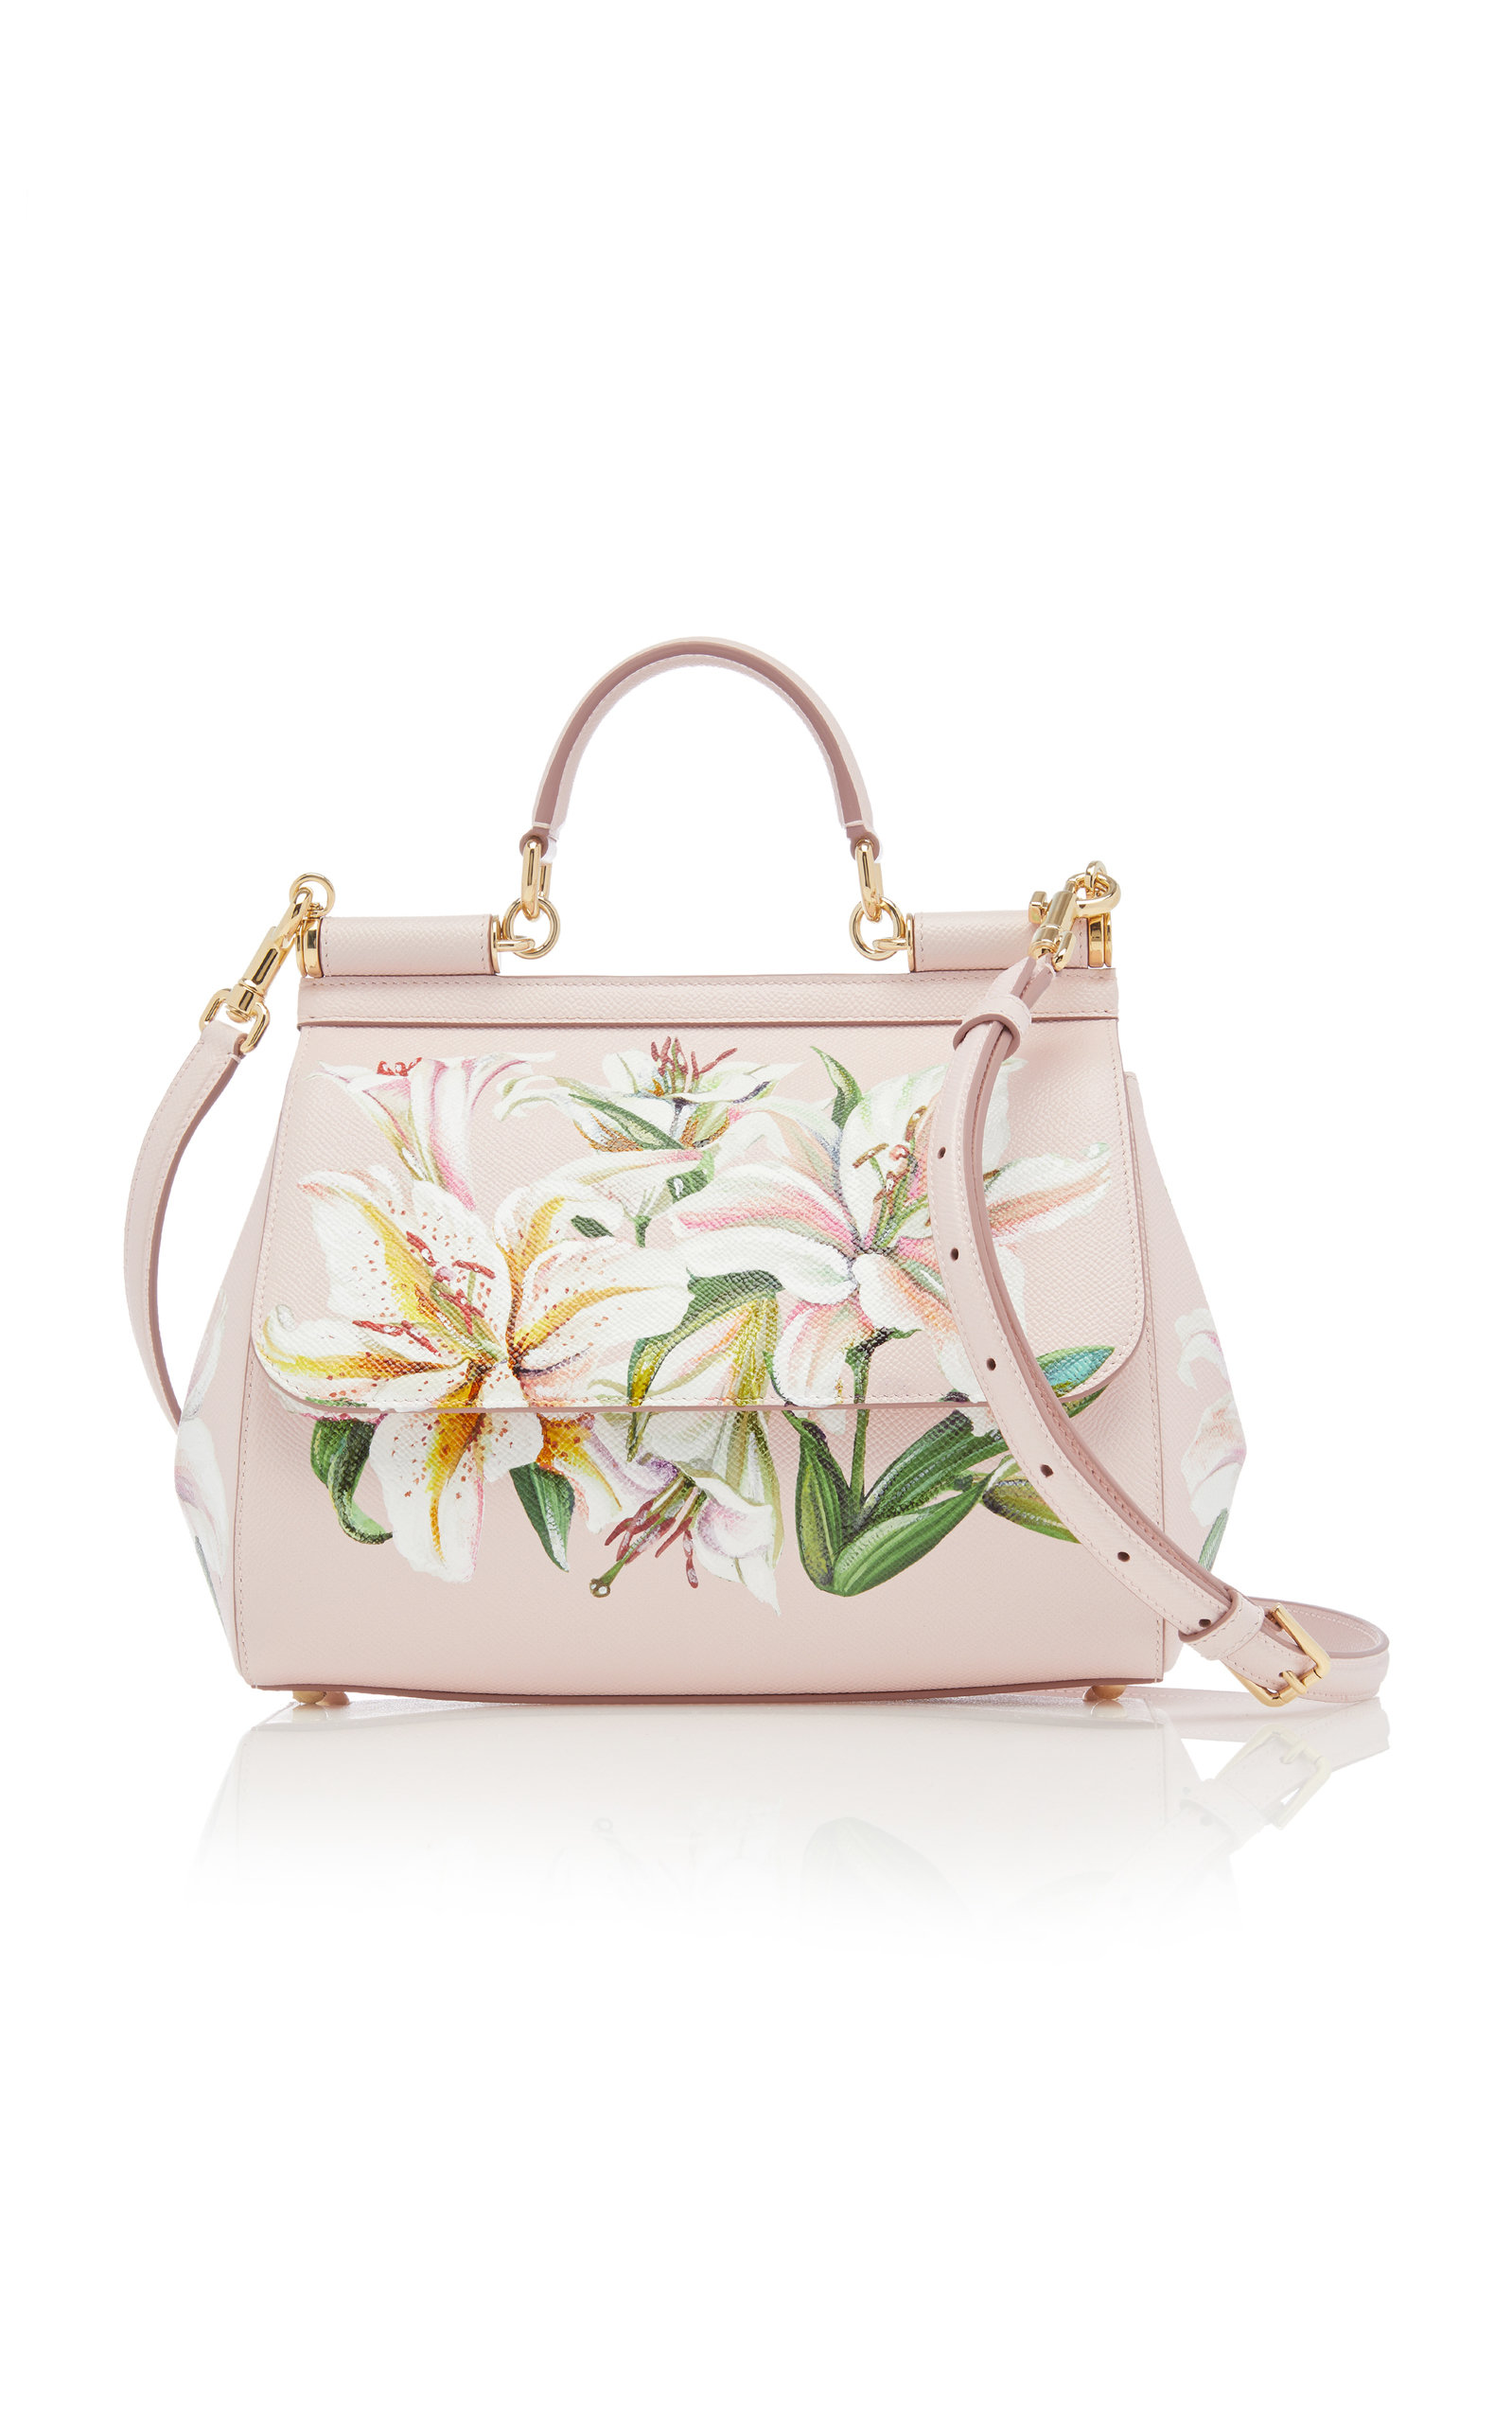 99028ce6e9 Sicily Printed Leather Bag by Dolce   Gabbana